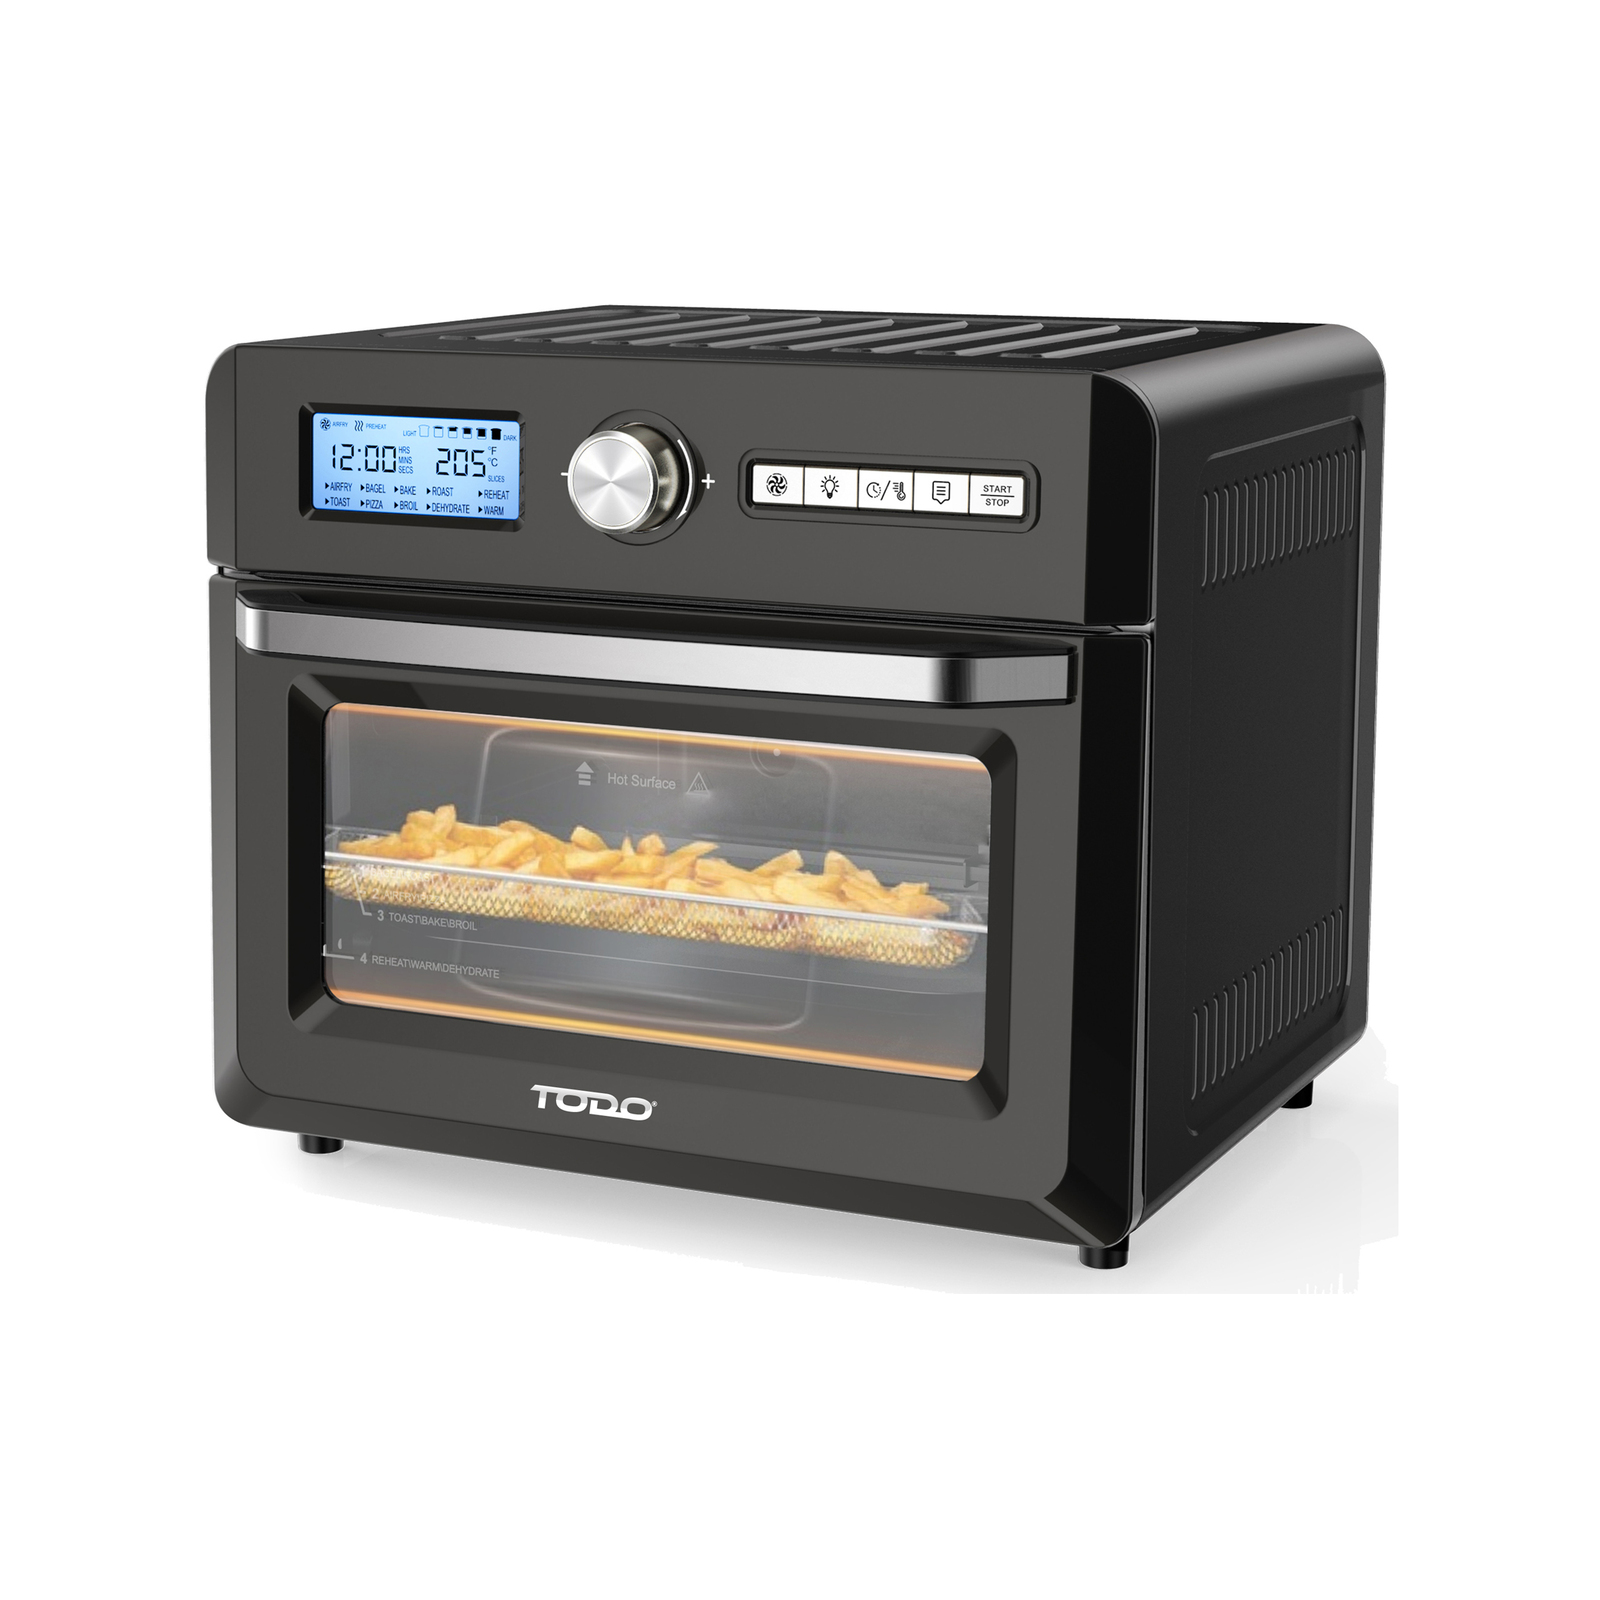 TODO 1550W 18L Air Fryer Oven w/ Rotisserie Grill